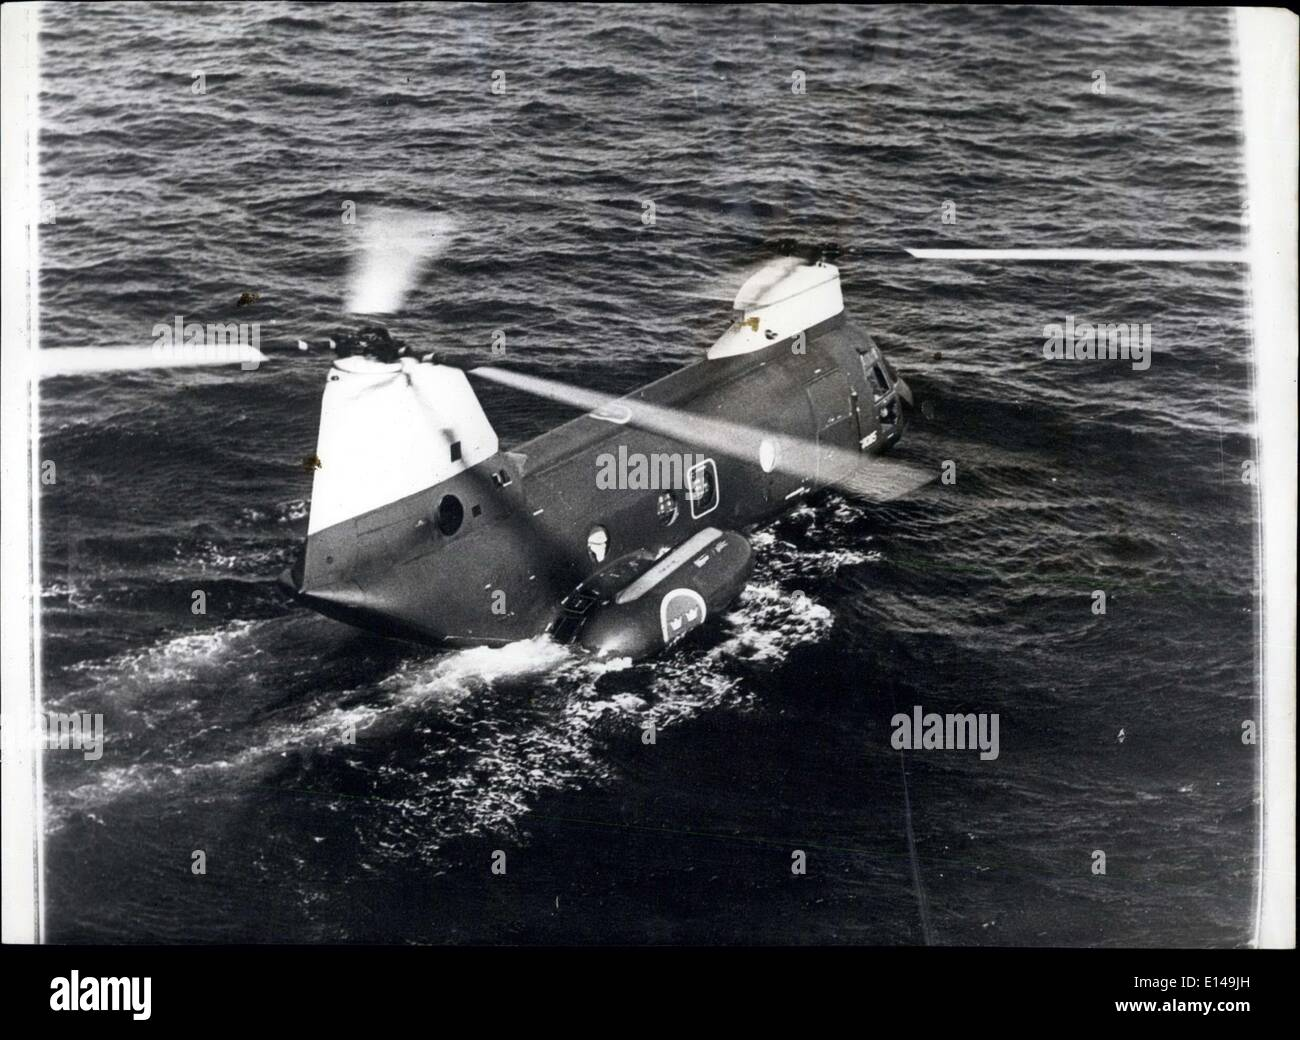 Apr. 17, 2012 - Amphibious helicopter uses revealed: Helicopters are now becoming amphibious. This Boeing HKP-4 belonging to the Swedish Air Forch is seen resting on the high seas like a float. The new floating concept developed in the US permits a much greater versatility in military operations. It is even planned to use the amphi-copter extensively in future undersea warfare technique. Photo shows Amphibious helicopter HKP-4 seen resting atop the ocean during a recent military exercise. - Stock Image